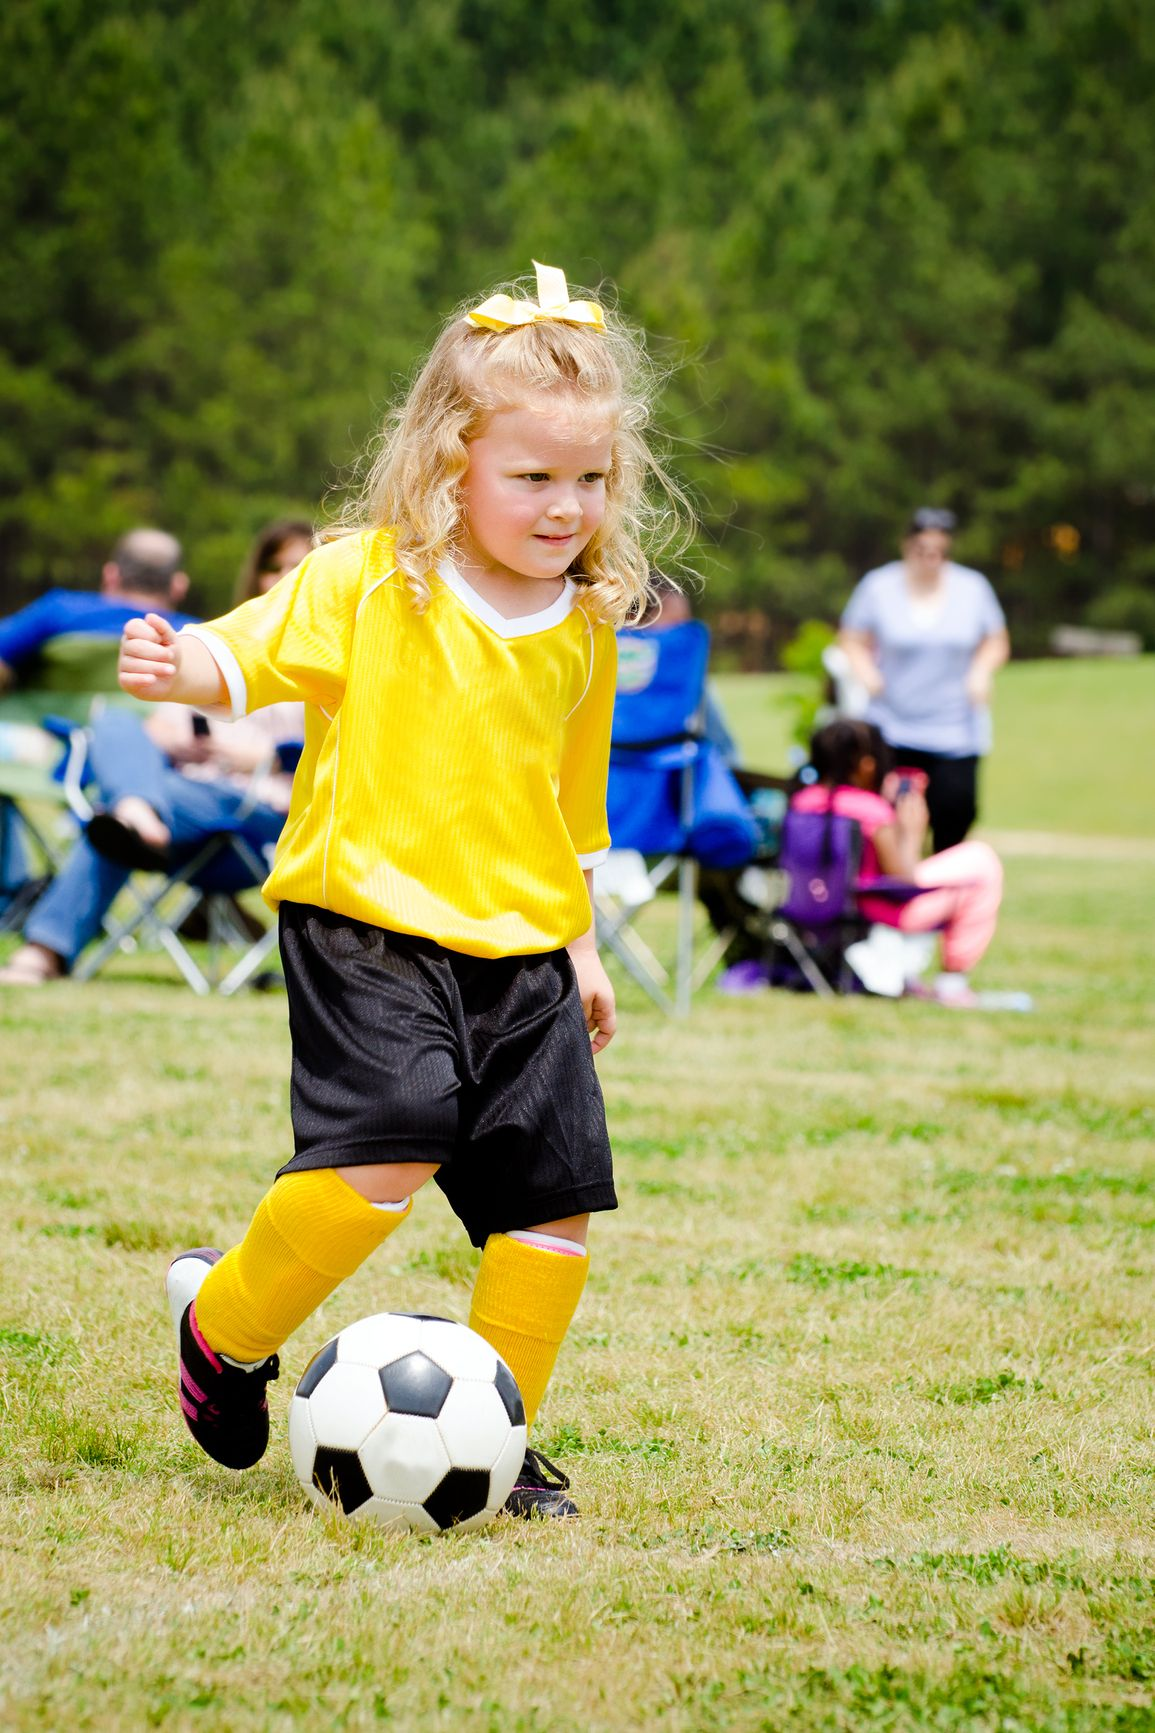 Cute young girl in uniform playing in organized youth